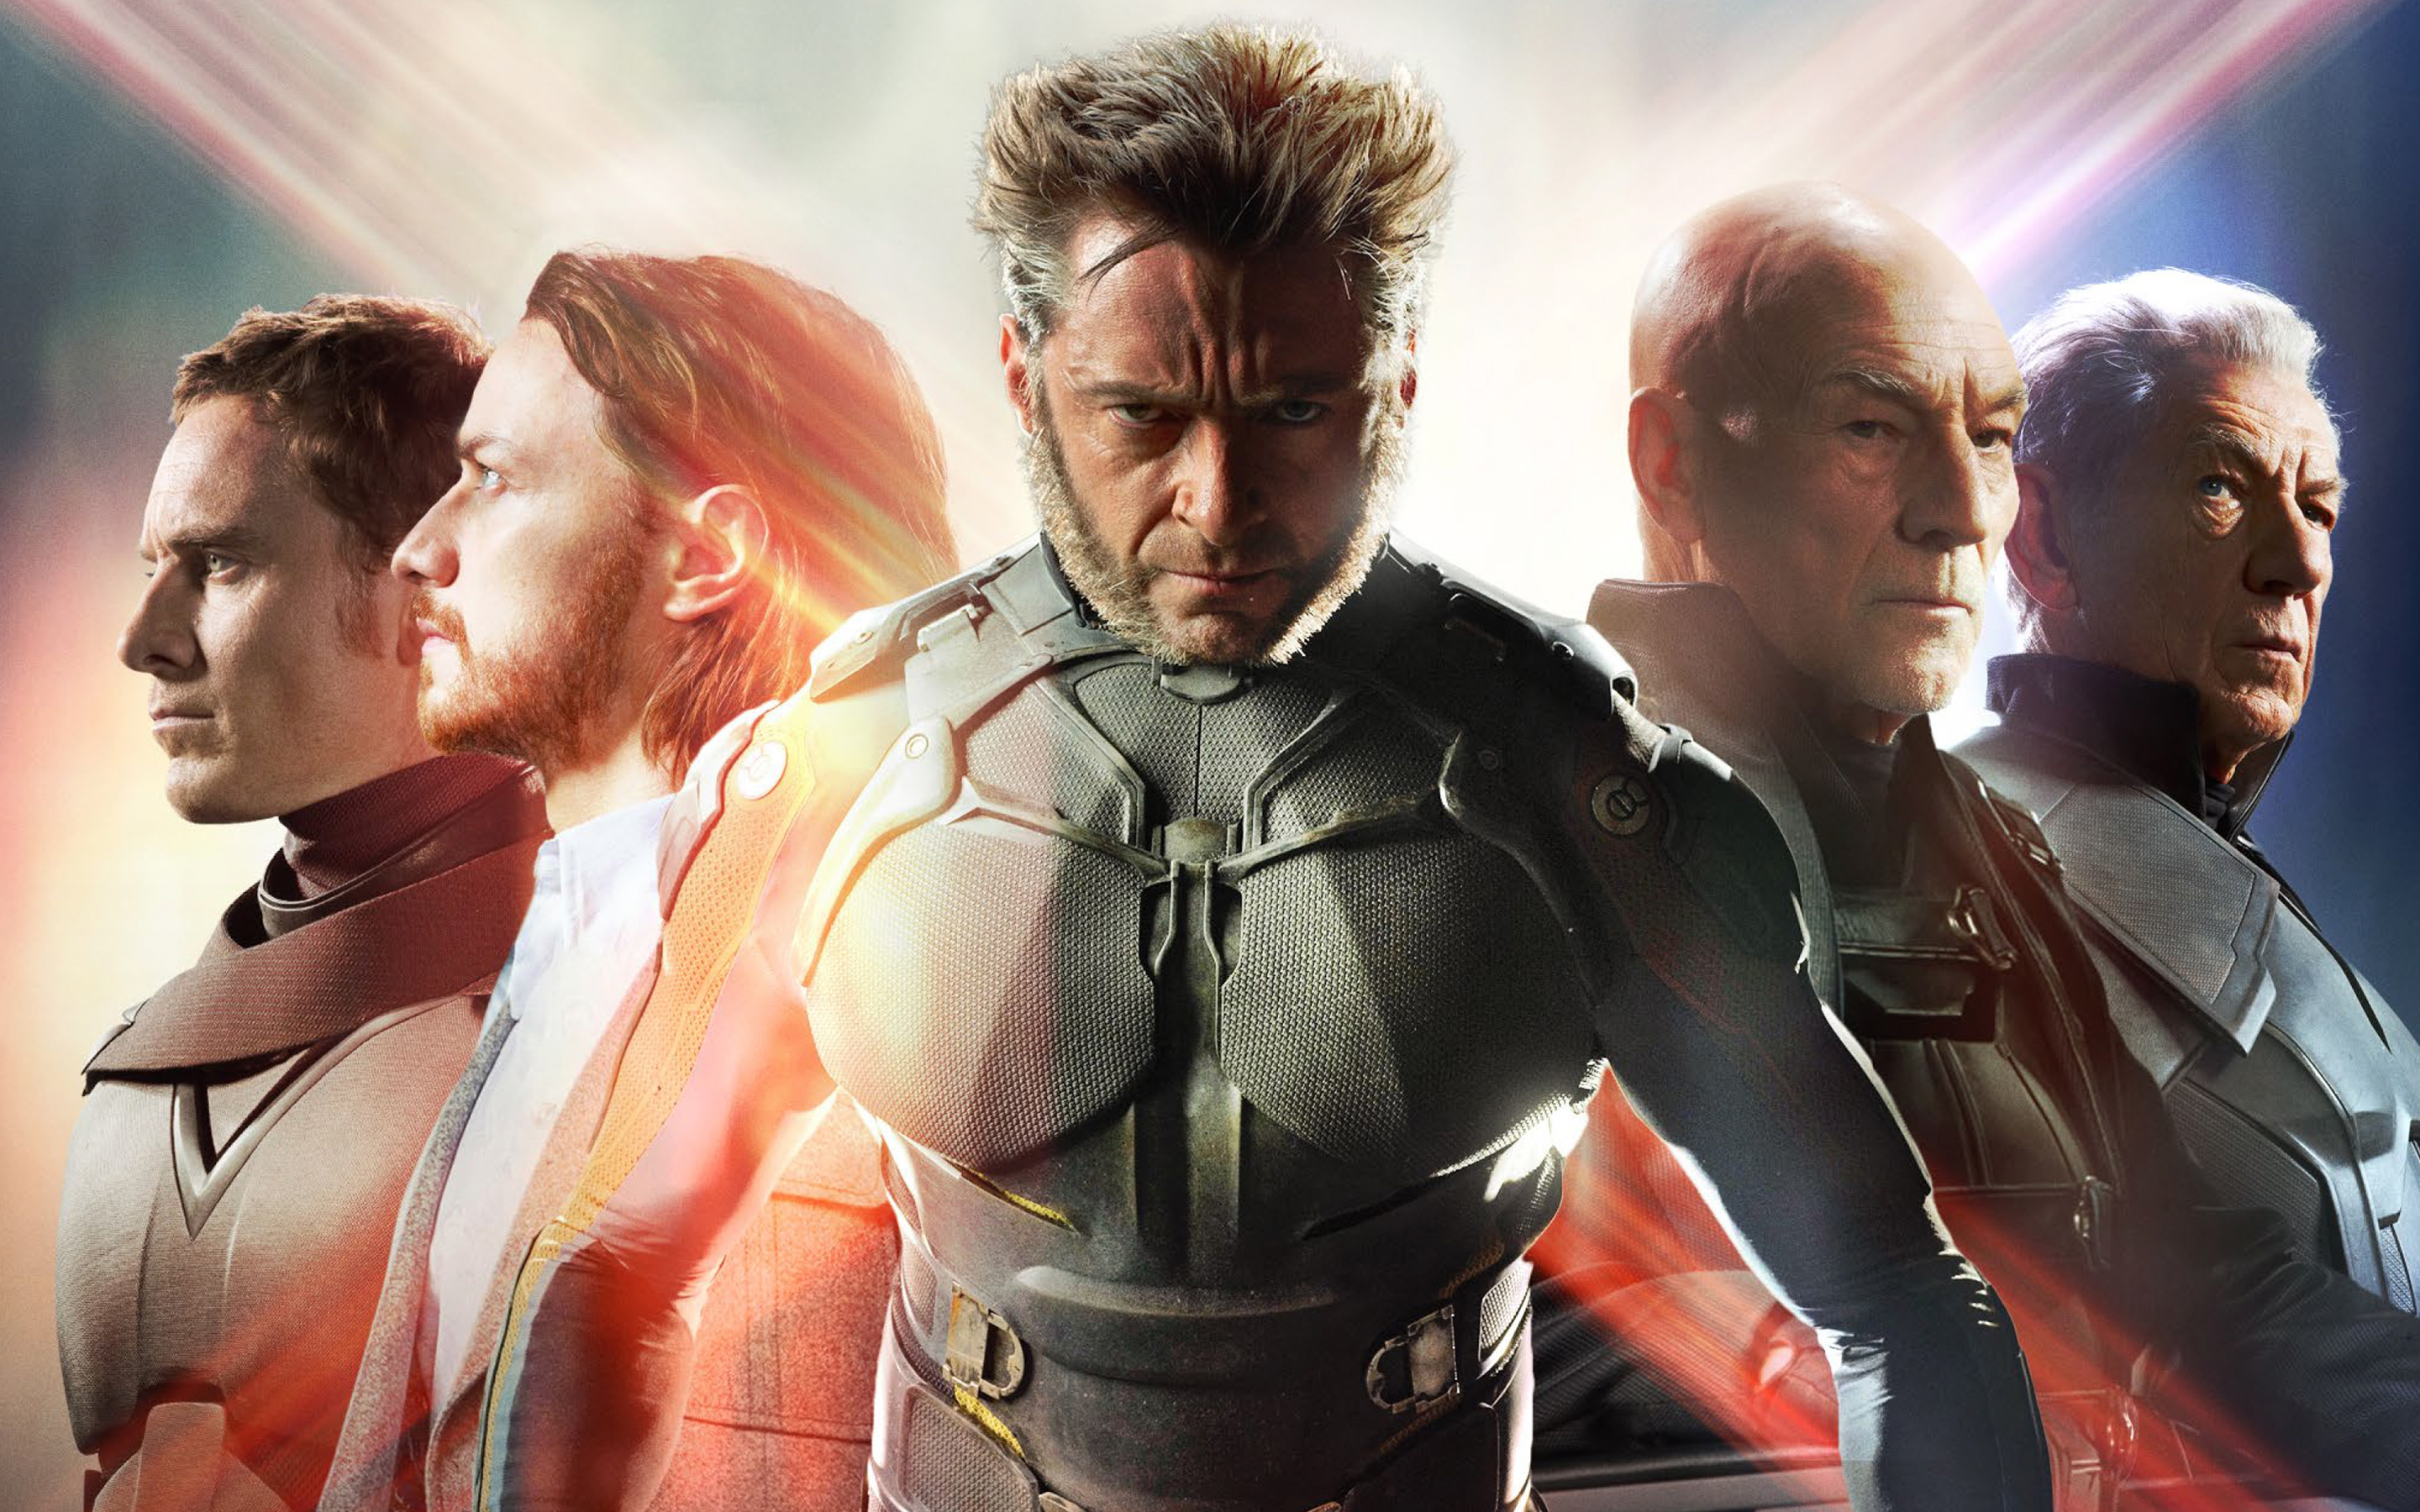 x men days of future past 2014 4145208 1920x1200 all for desktop x men days of future past